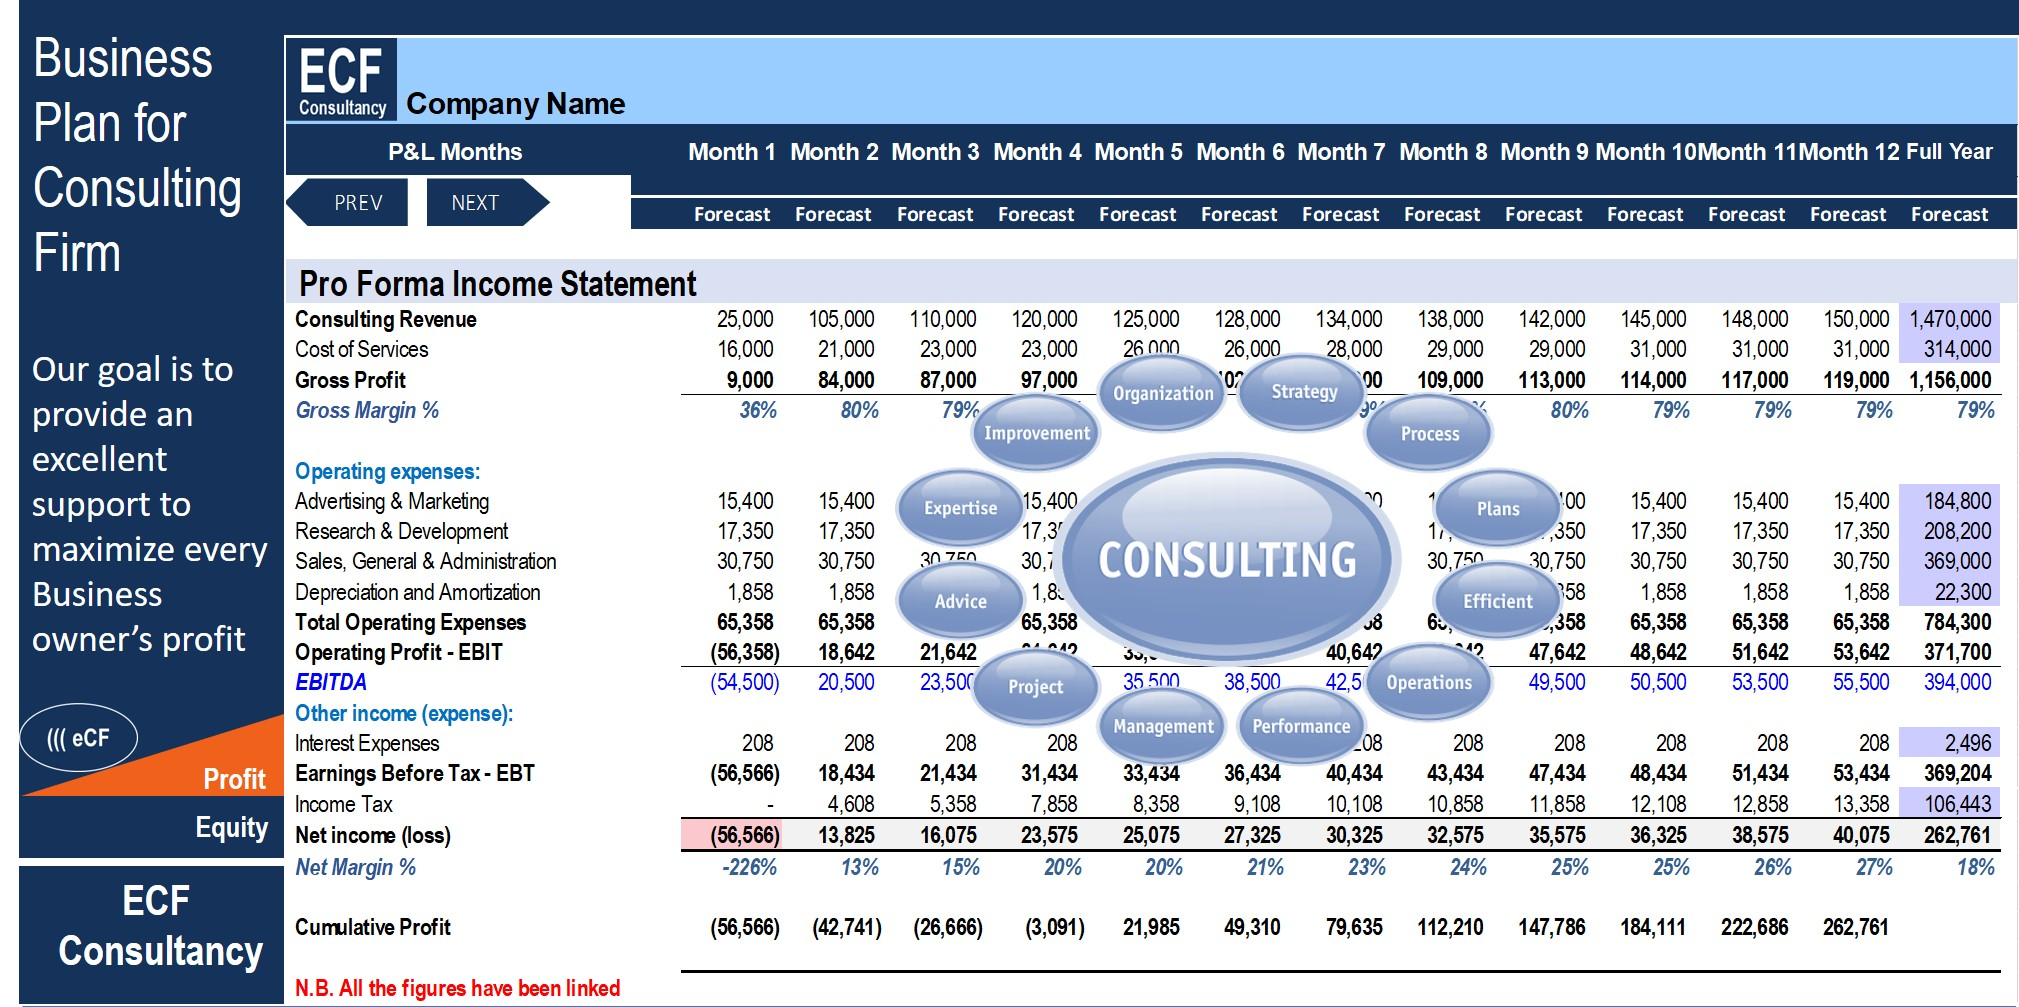 Startup Business Plan - Consulting Firm